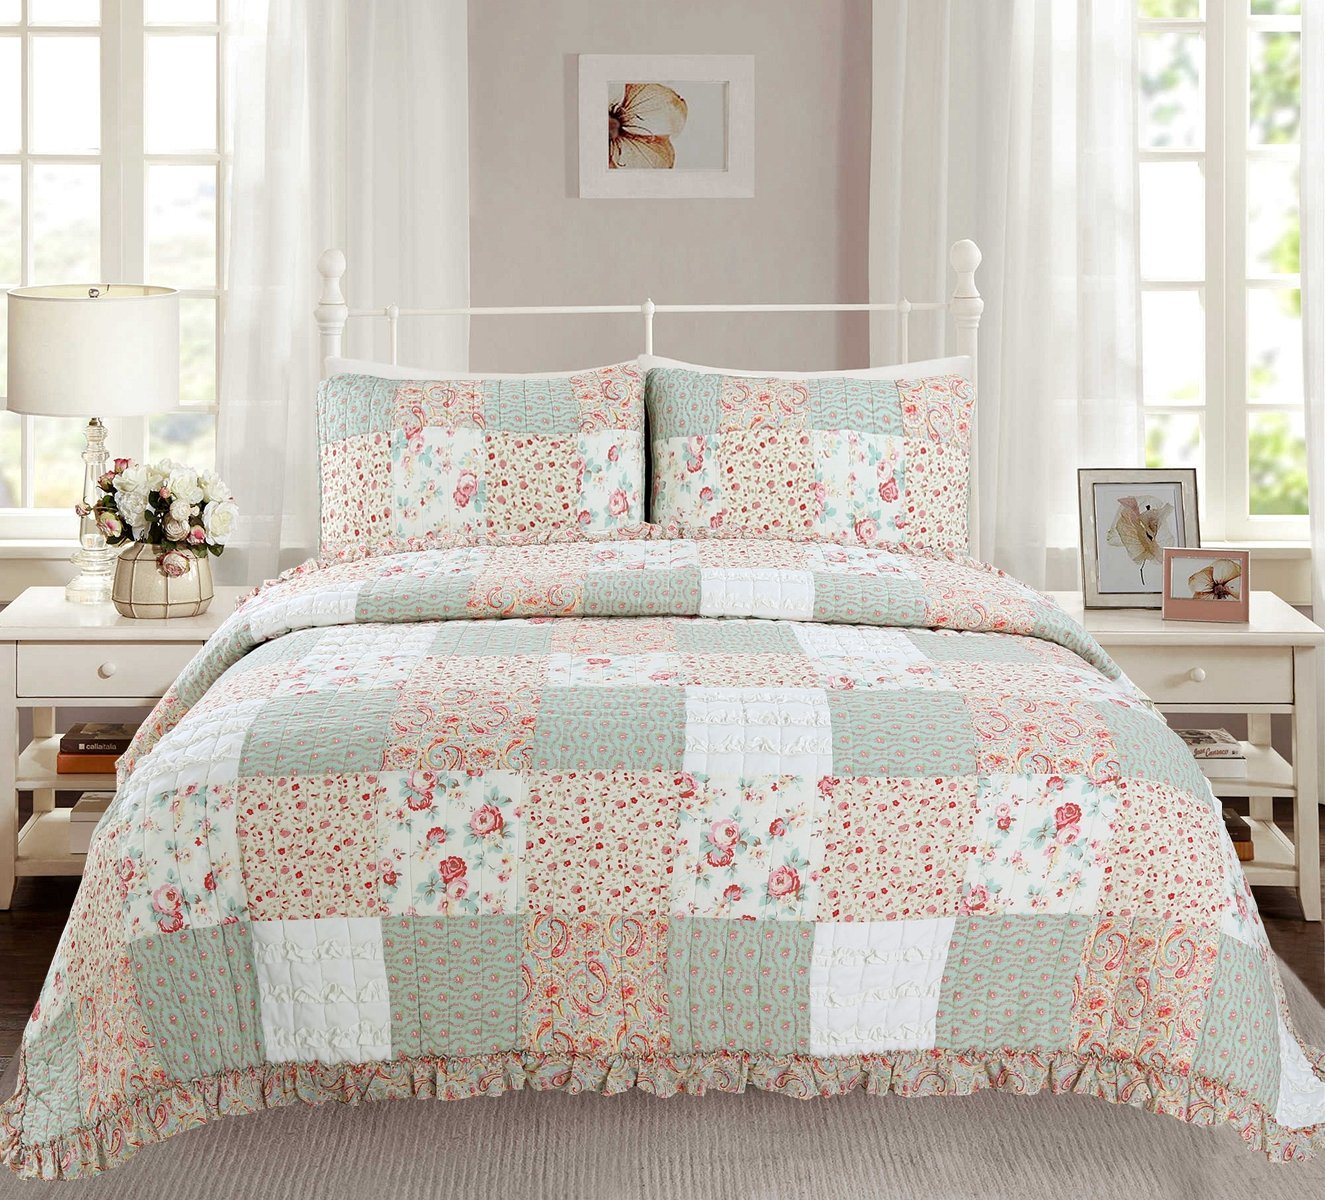 Cozy Line Home Fashions Dreamy Rose Bedding Quilt Set, Coral Tiffany Shabby Chic Lace Floral Real Patchwork 100% Cotton Reversible Coverlet, Bedspread, Gifts for Girls Women (King - 3 Piece)